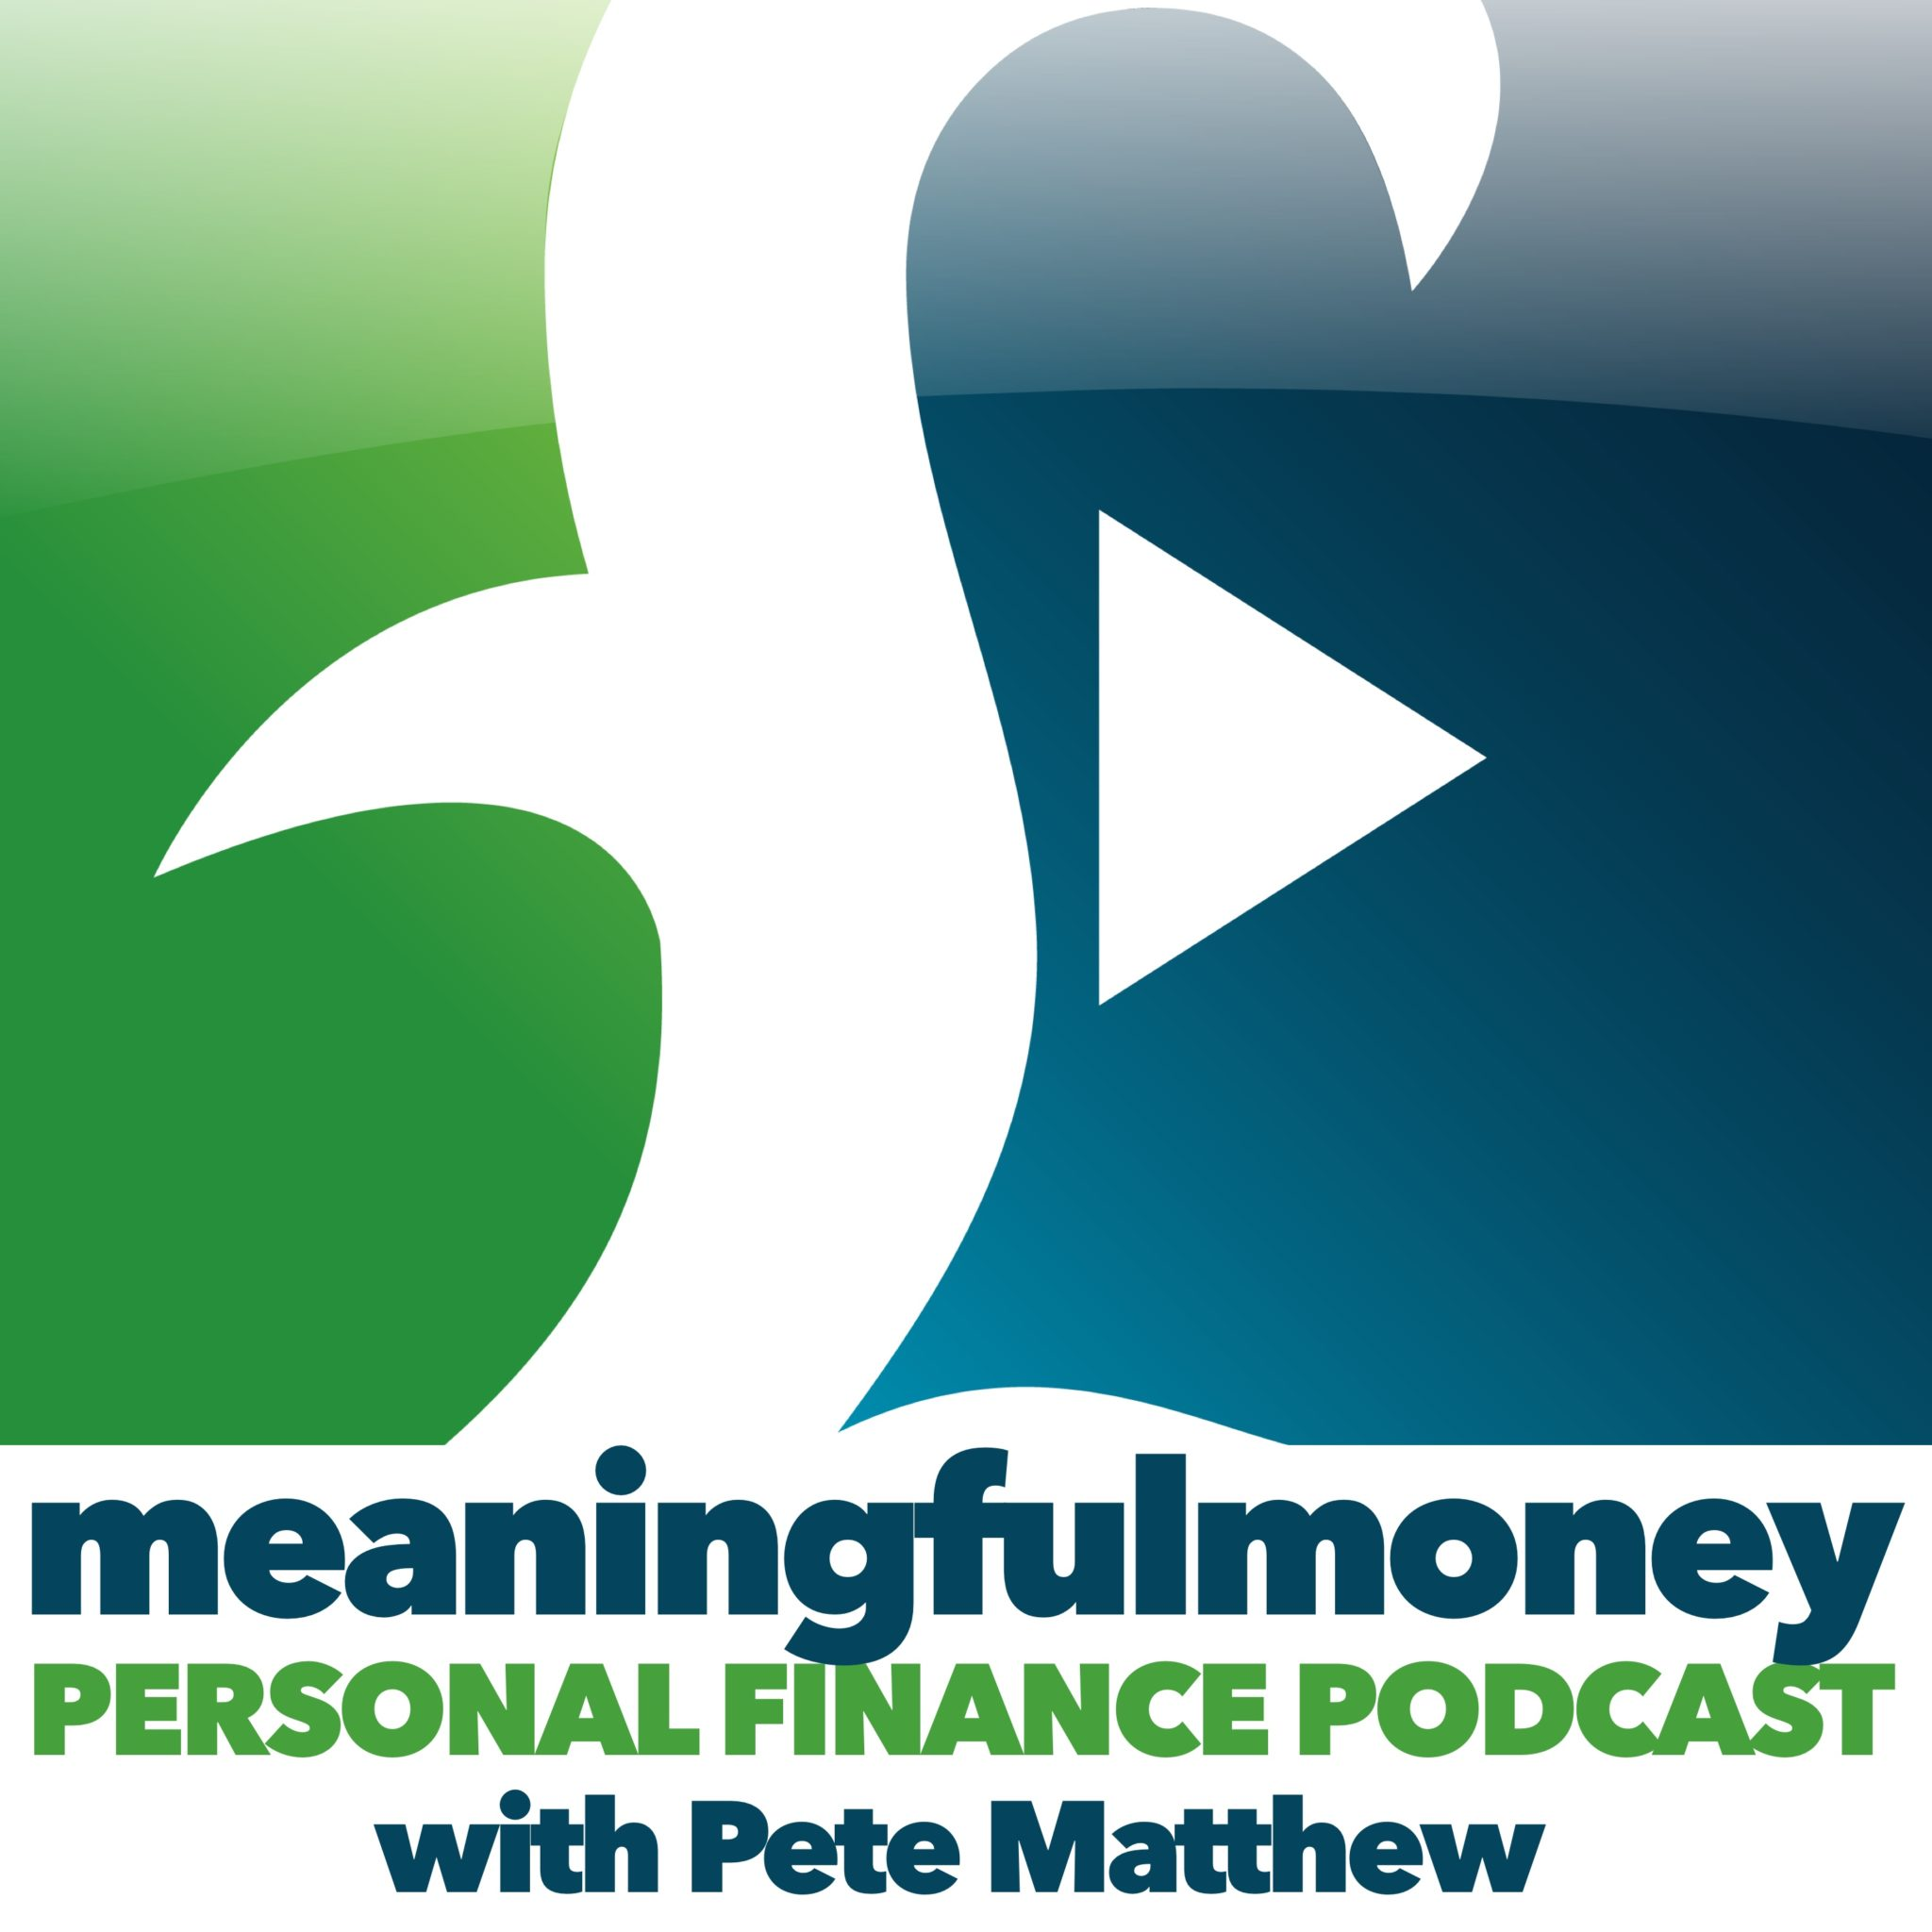 The Meaningful Money Podcast - Making Sense Of Money with Pete Matthew